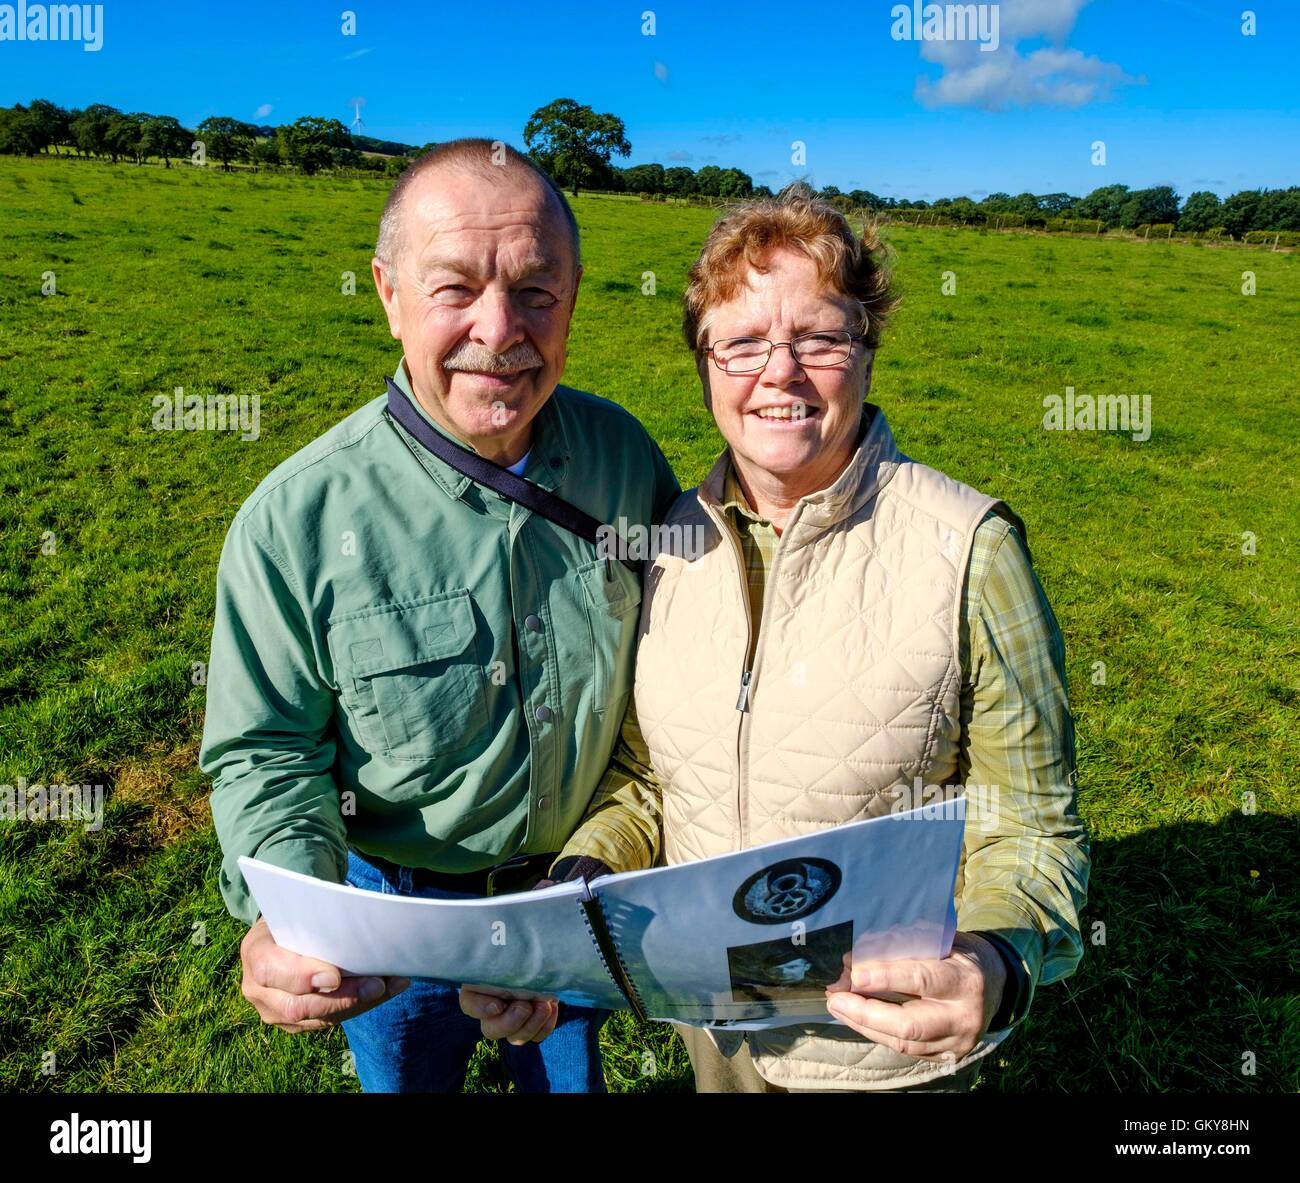 Strathaven, Lanarkshire, Scotland, UK. 24th August, 2016. American couple make 6000 mile trip to Strathaven to trace - Stock Image